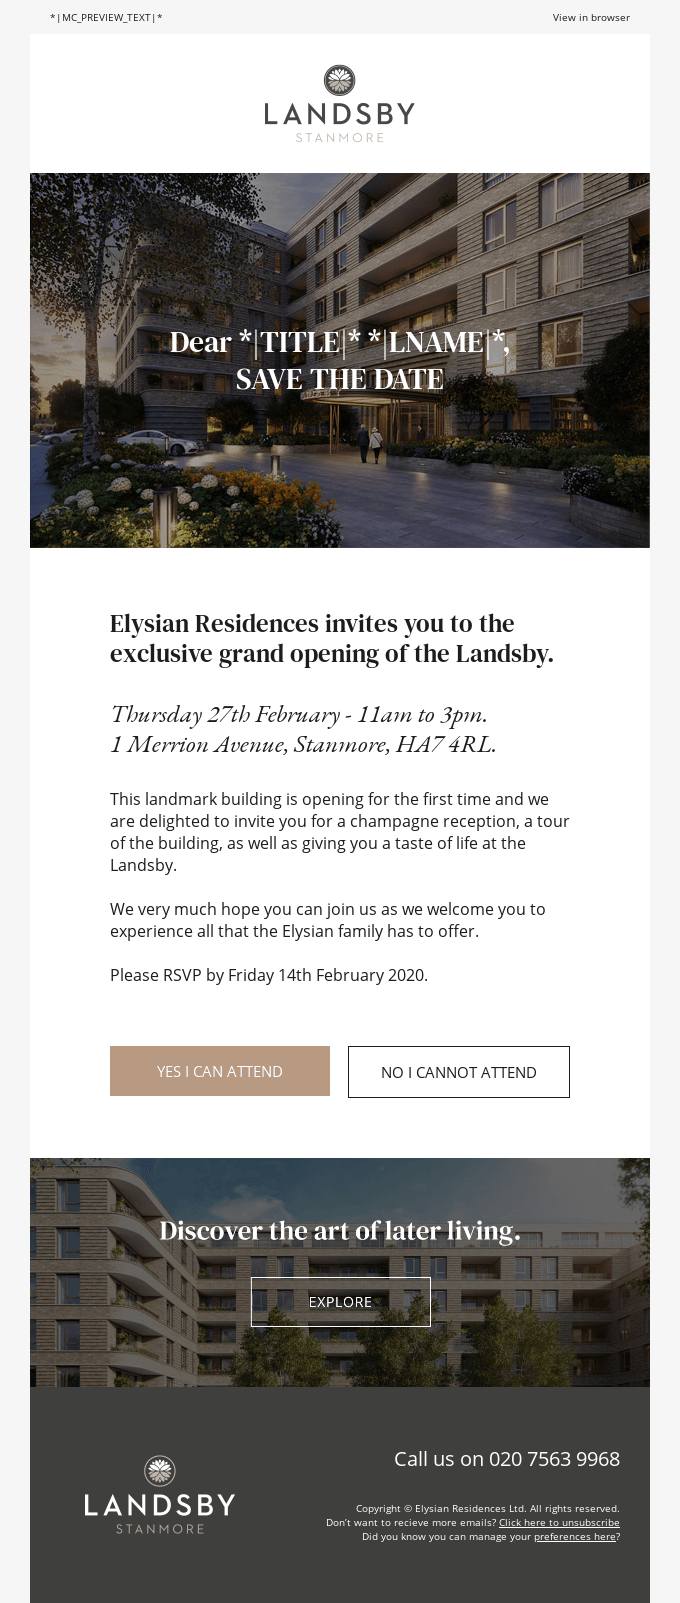 Personalized email announcing a new hotel opening.